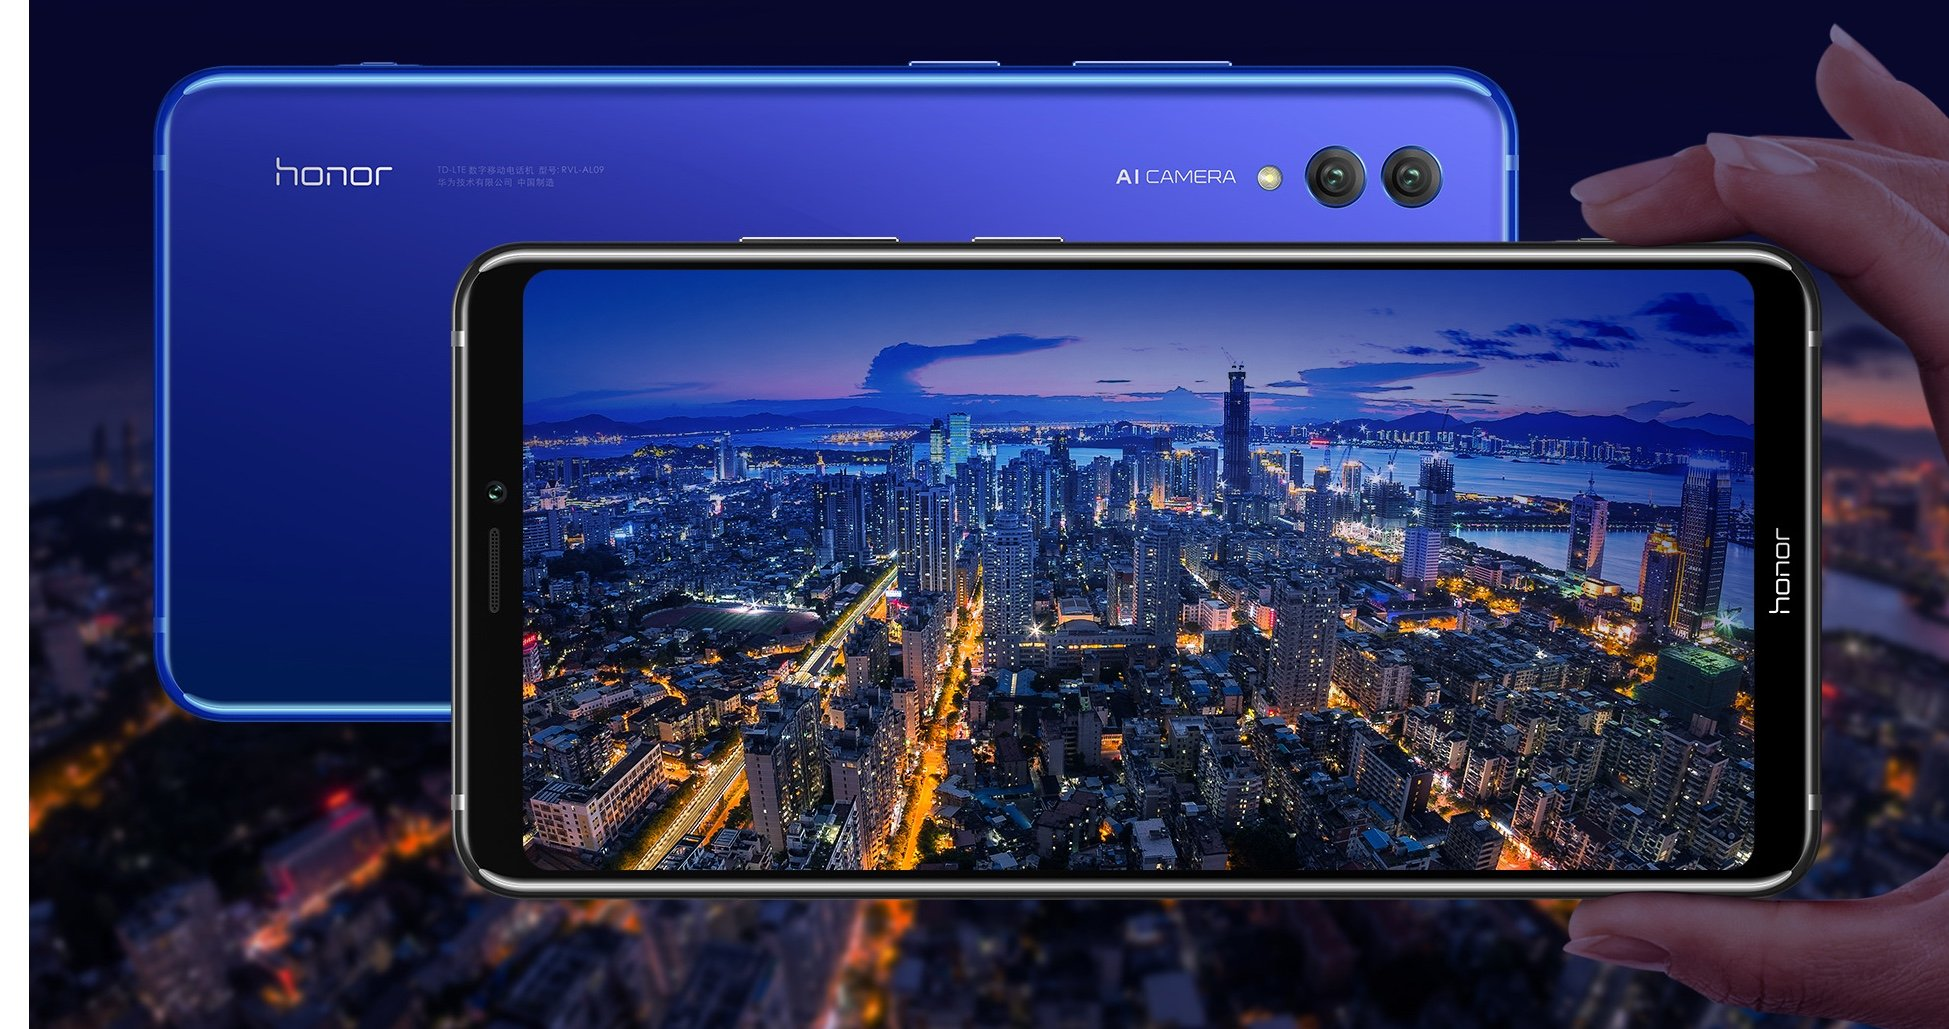 huawei, huawei honor note 9, huawei honor note 10 melumat, honor note 10, huawei telefonlari, telefon xeberleri